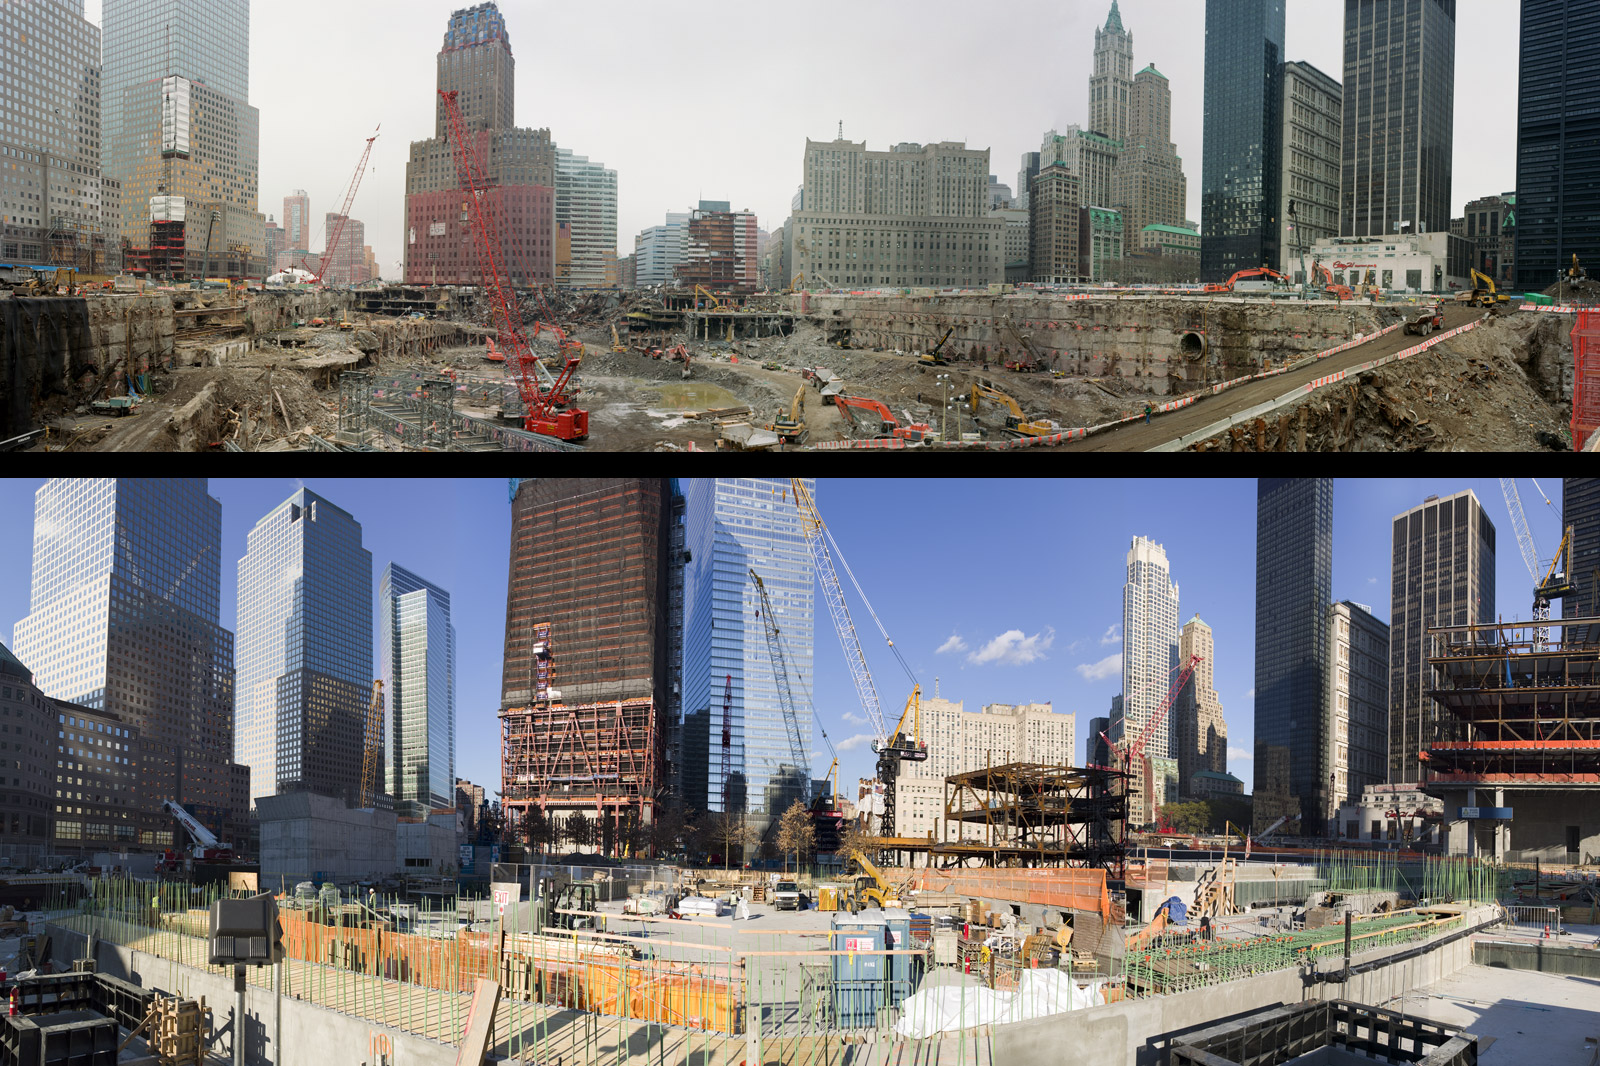 Assembled panoramas looking northeast from the southern end of the site show the emptiness of the pit in February 2002 (top) and the flurry of construction in November 2010